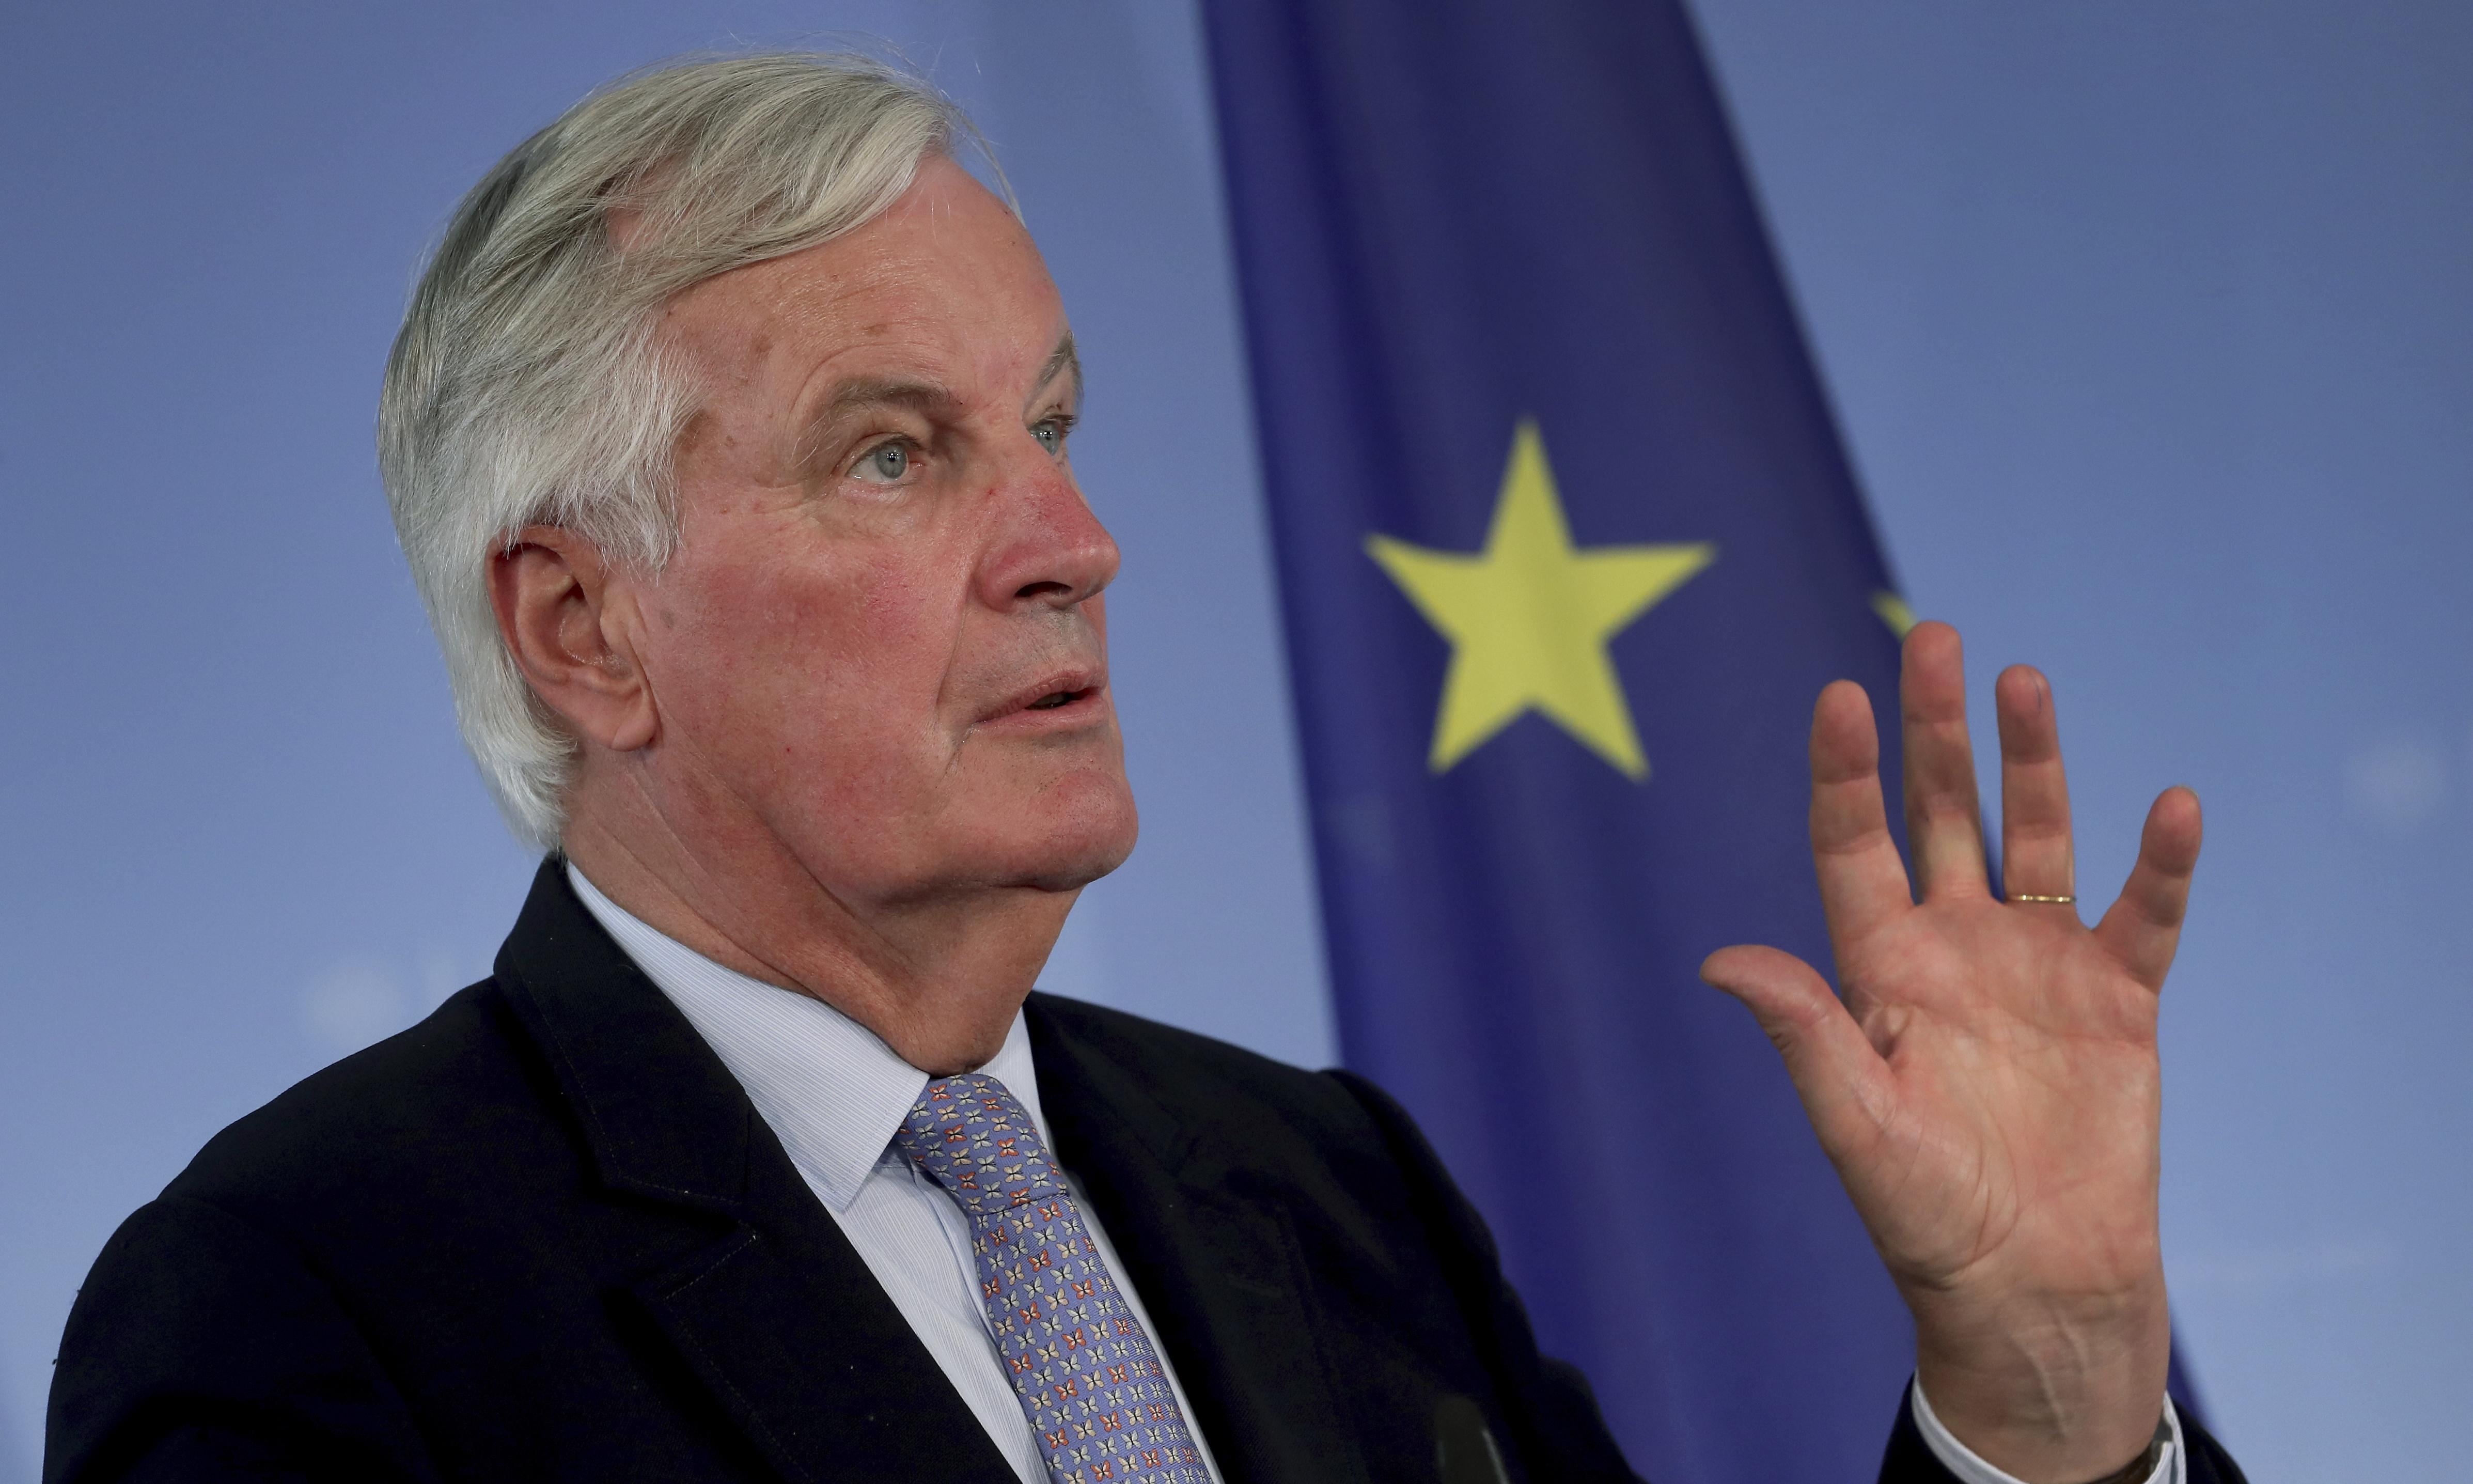 Michel Barnier rejects UK call for Canada-style trade deal